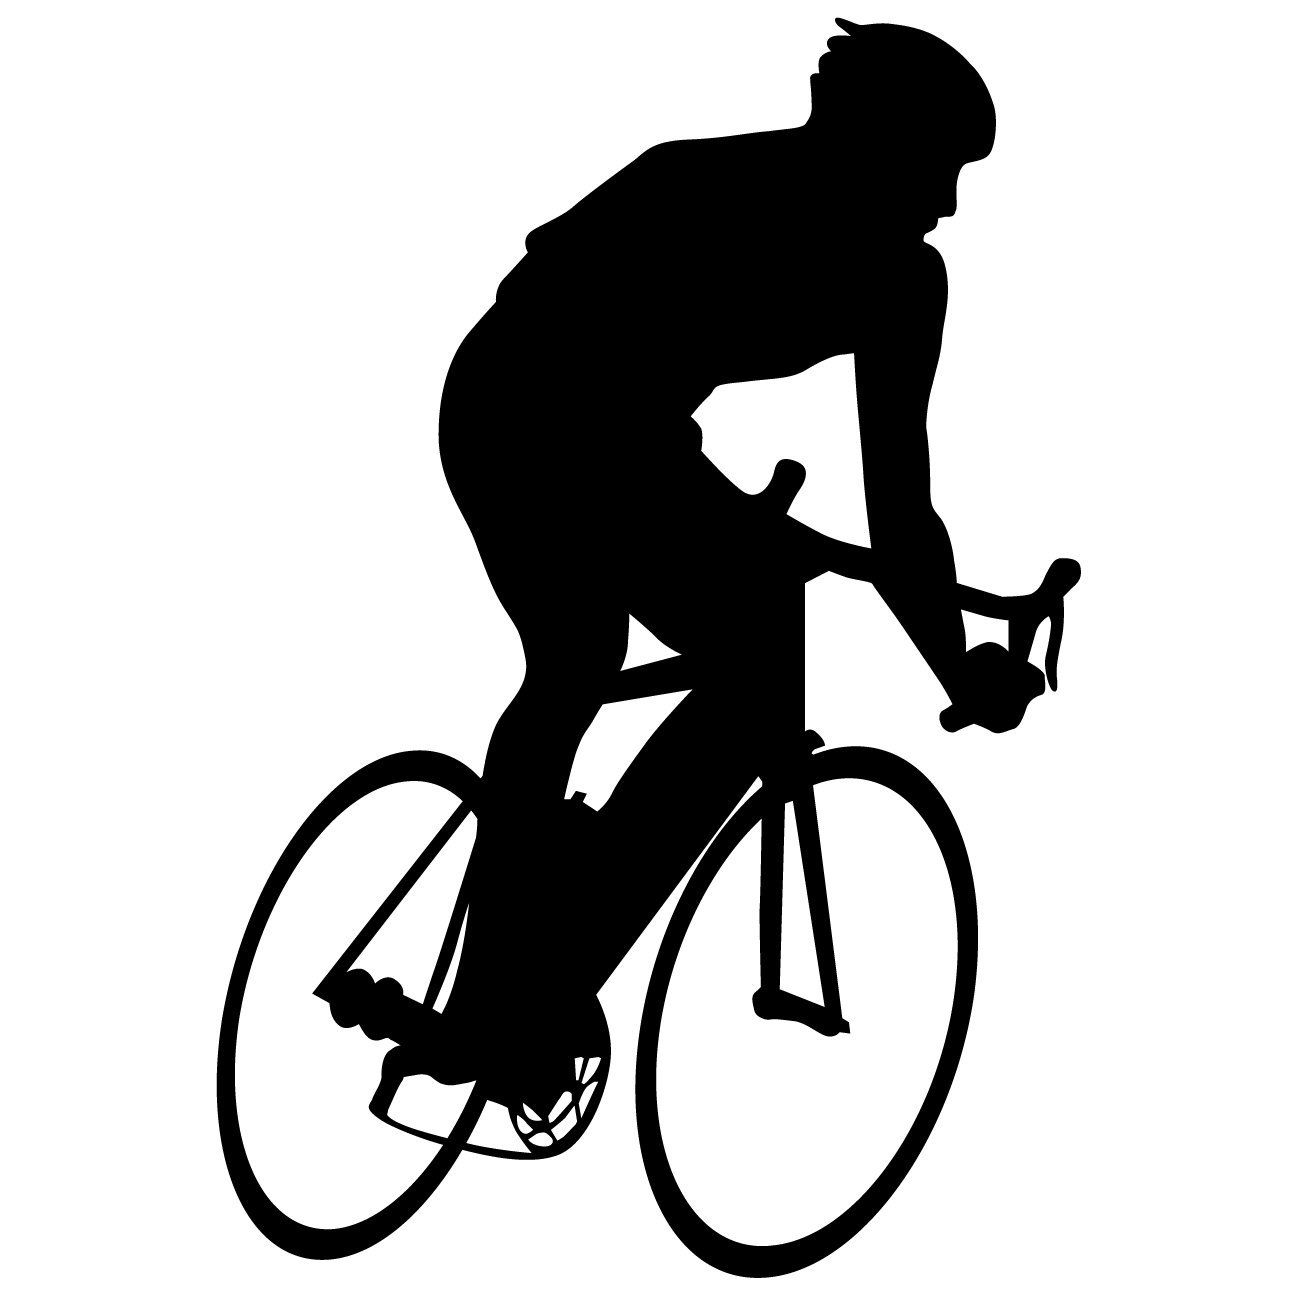 Bicycling Wall Decal Sticker 9